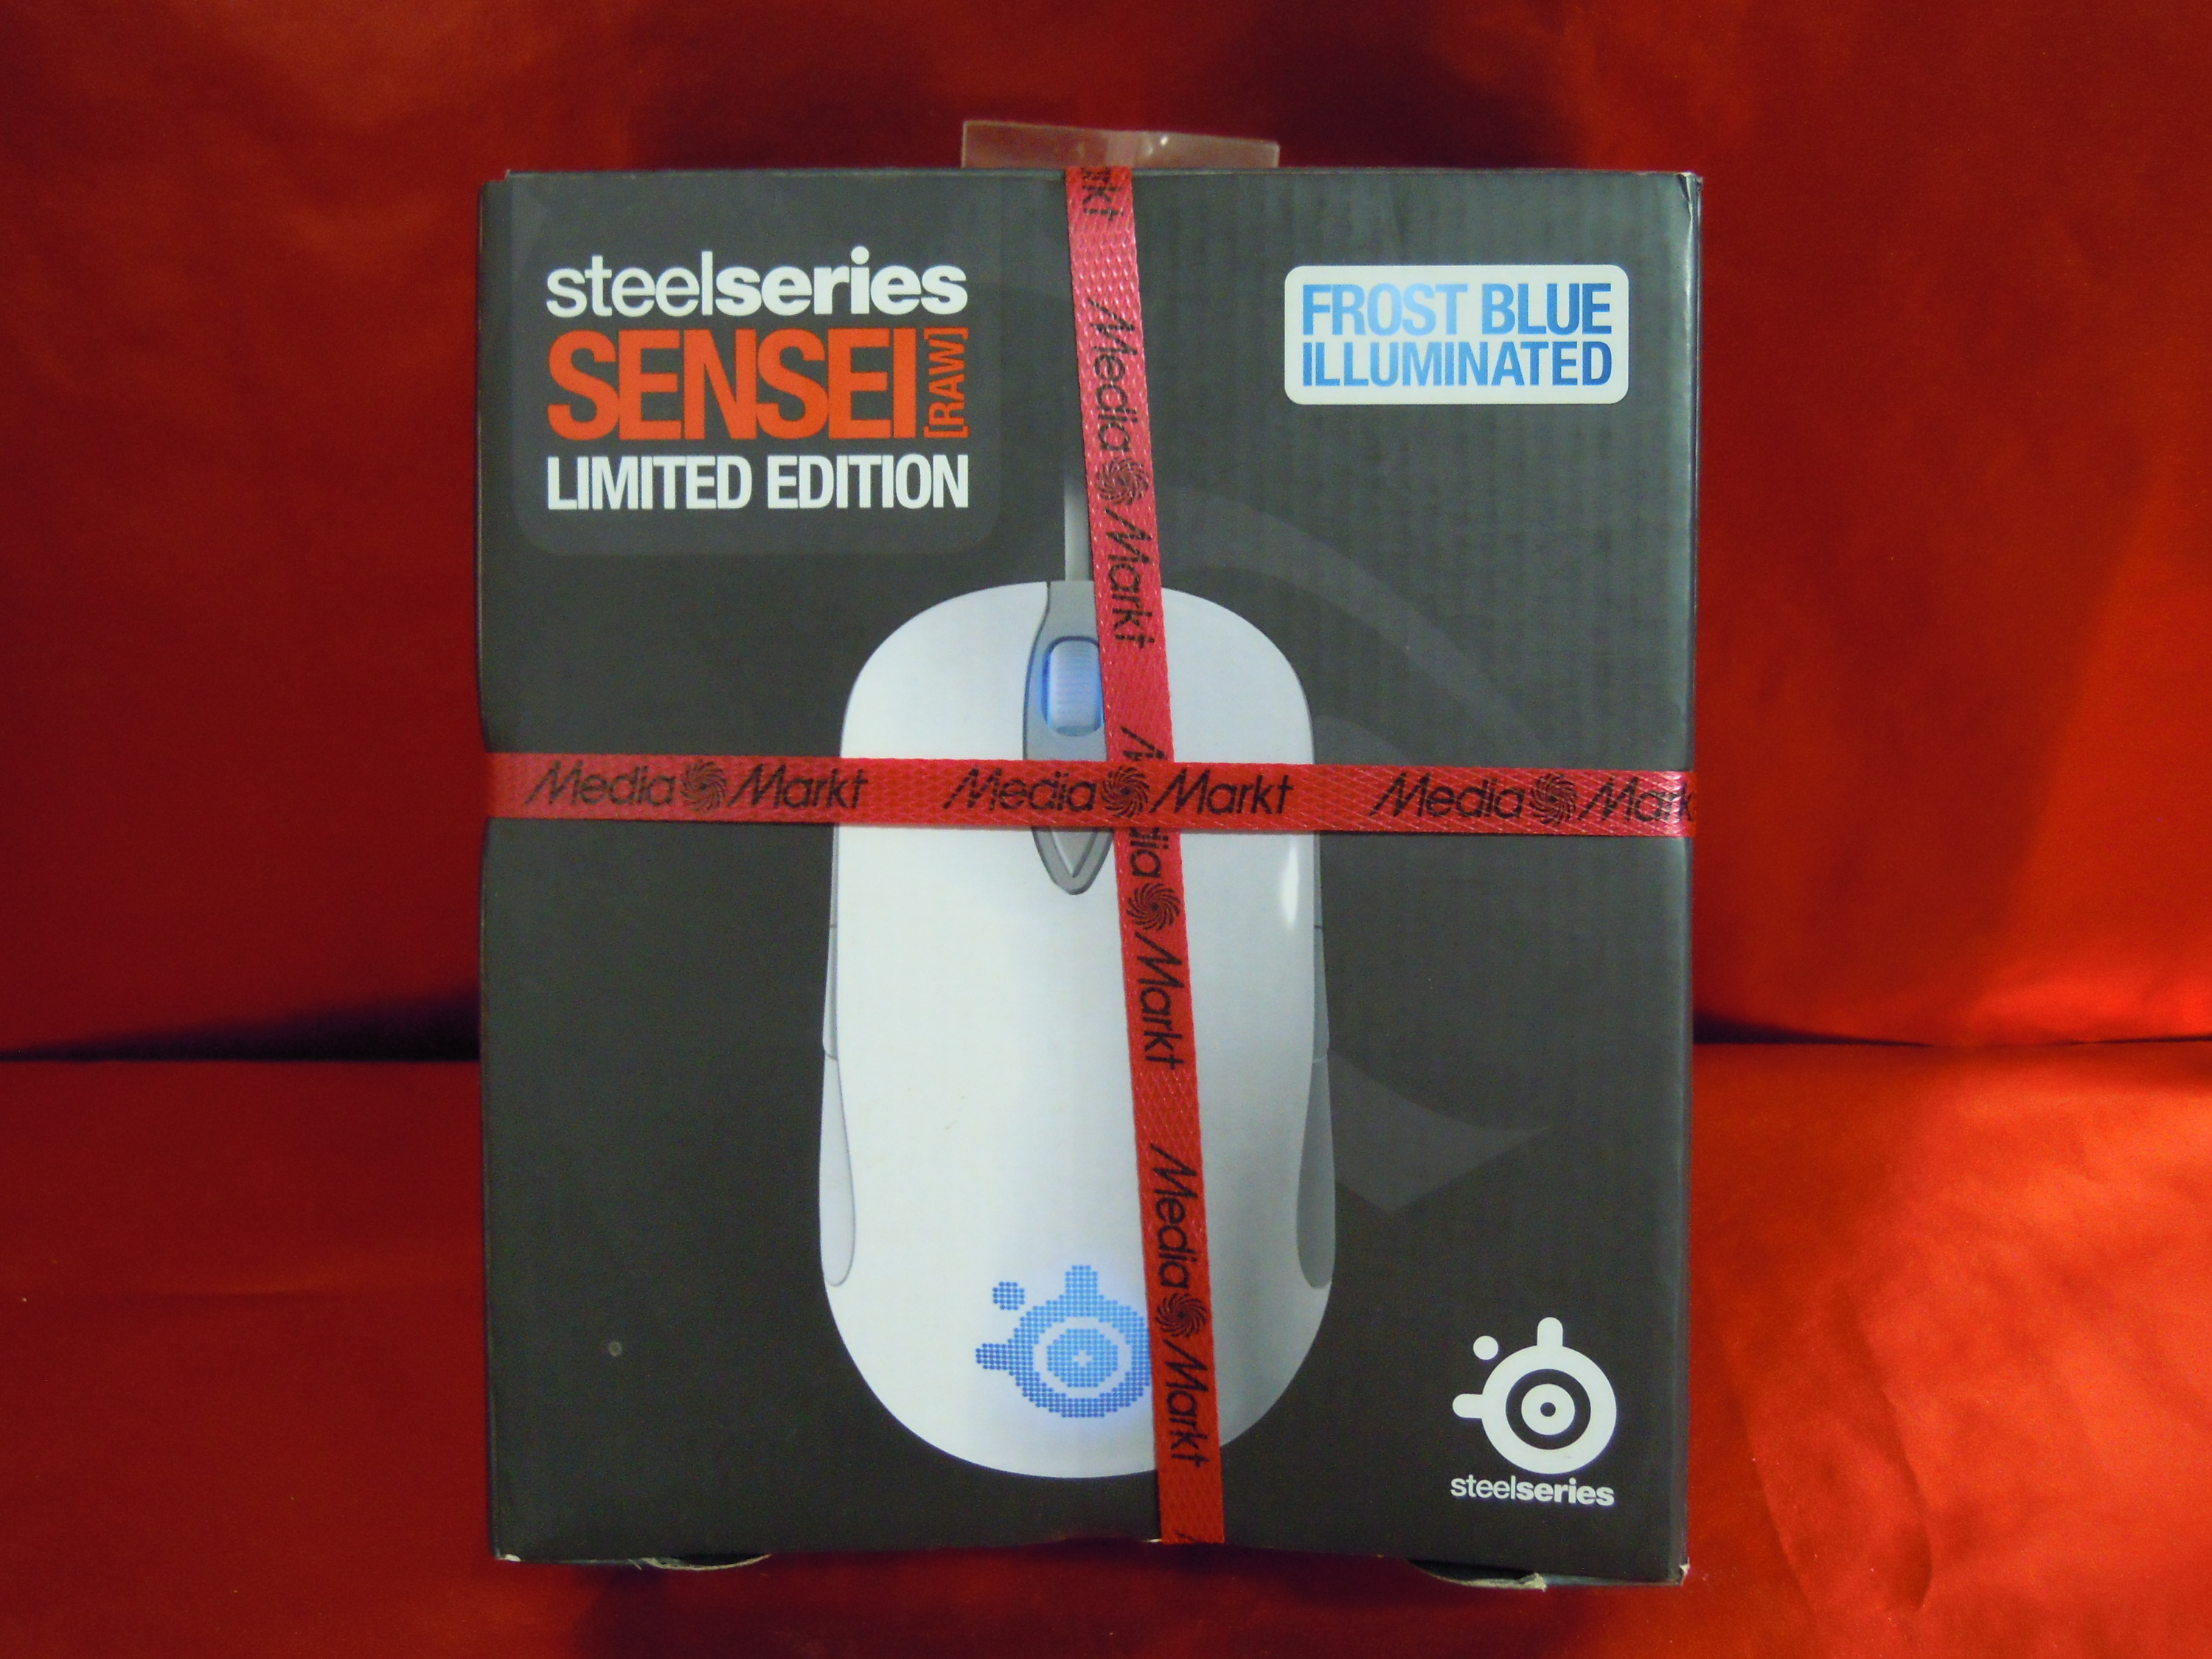 steelseries sensei raw limited edit frost blue illuminated gaming mouse neu ovp 5707119018050 ebay. Black Bedroom Furniture Sets. Home Design Ideas